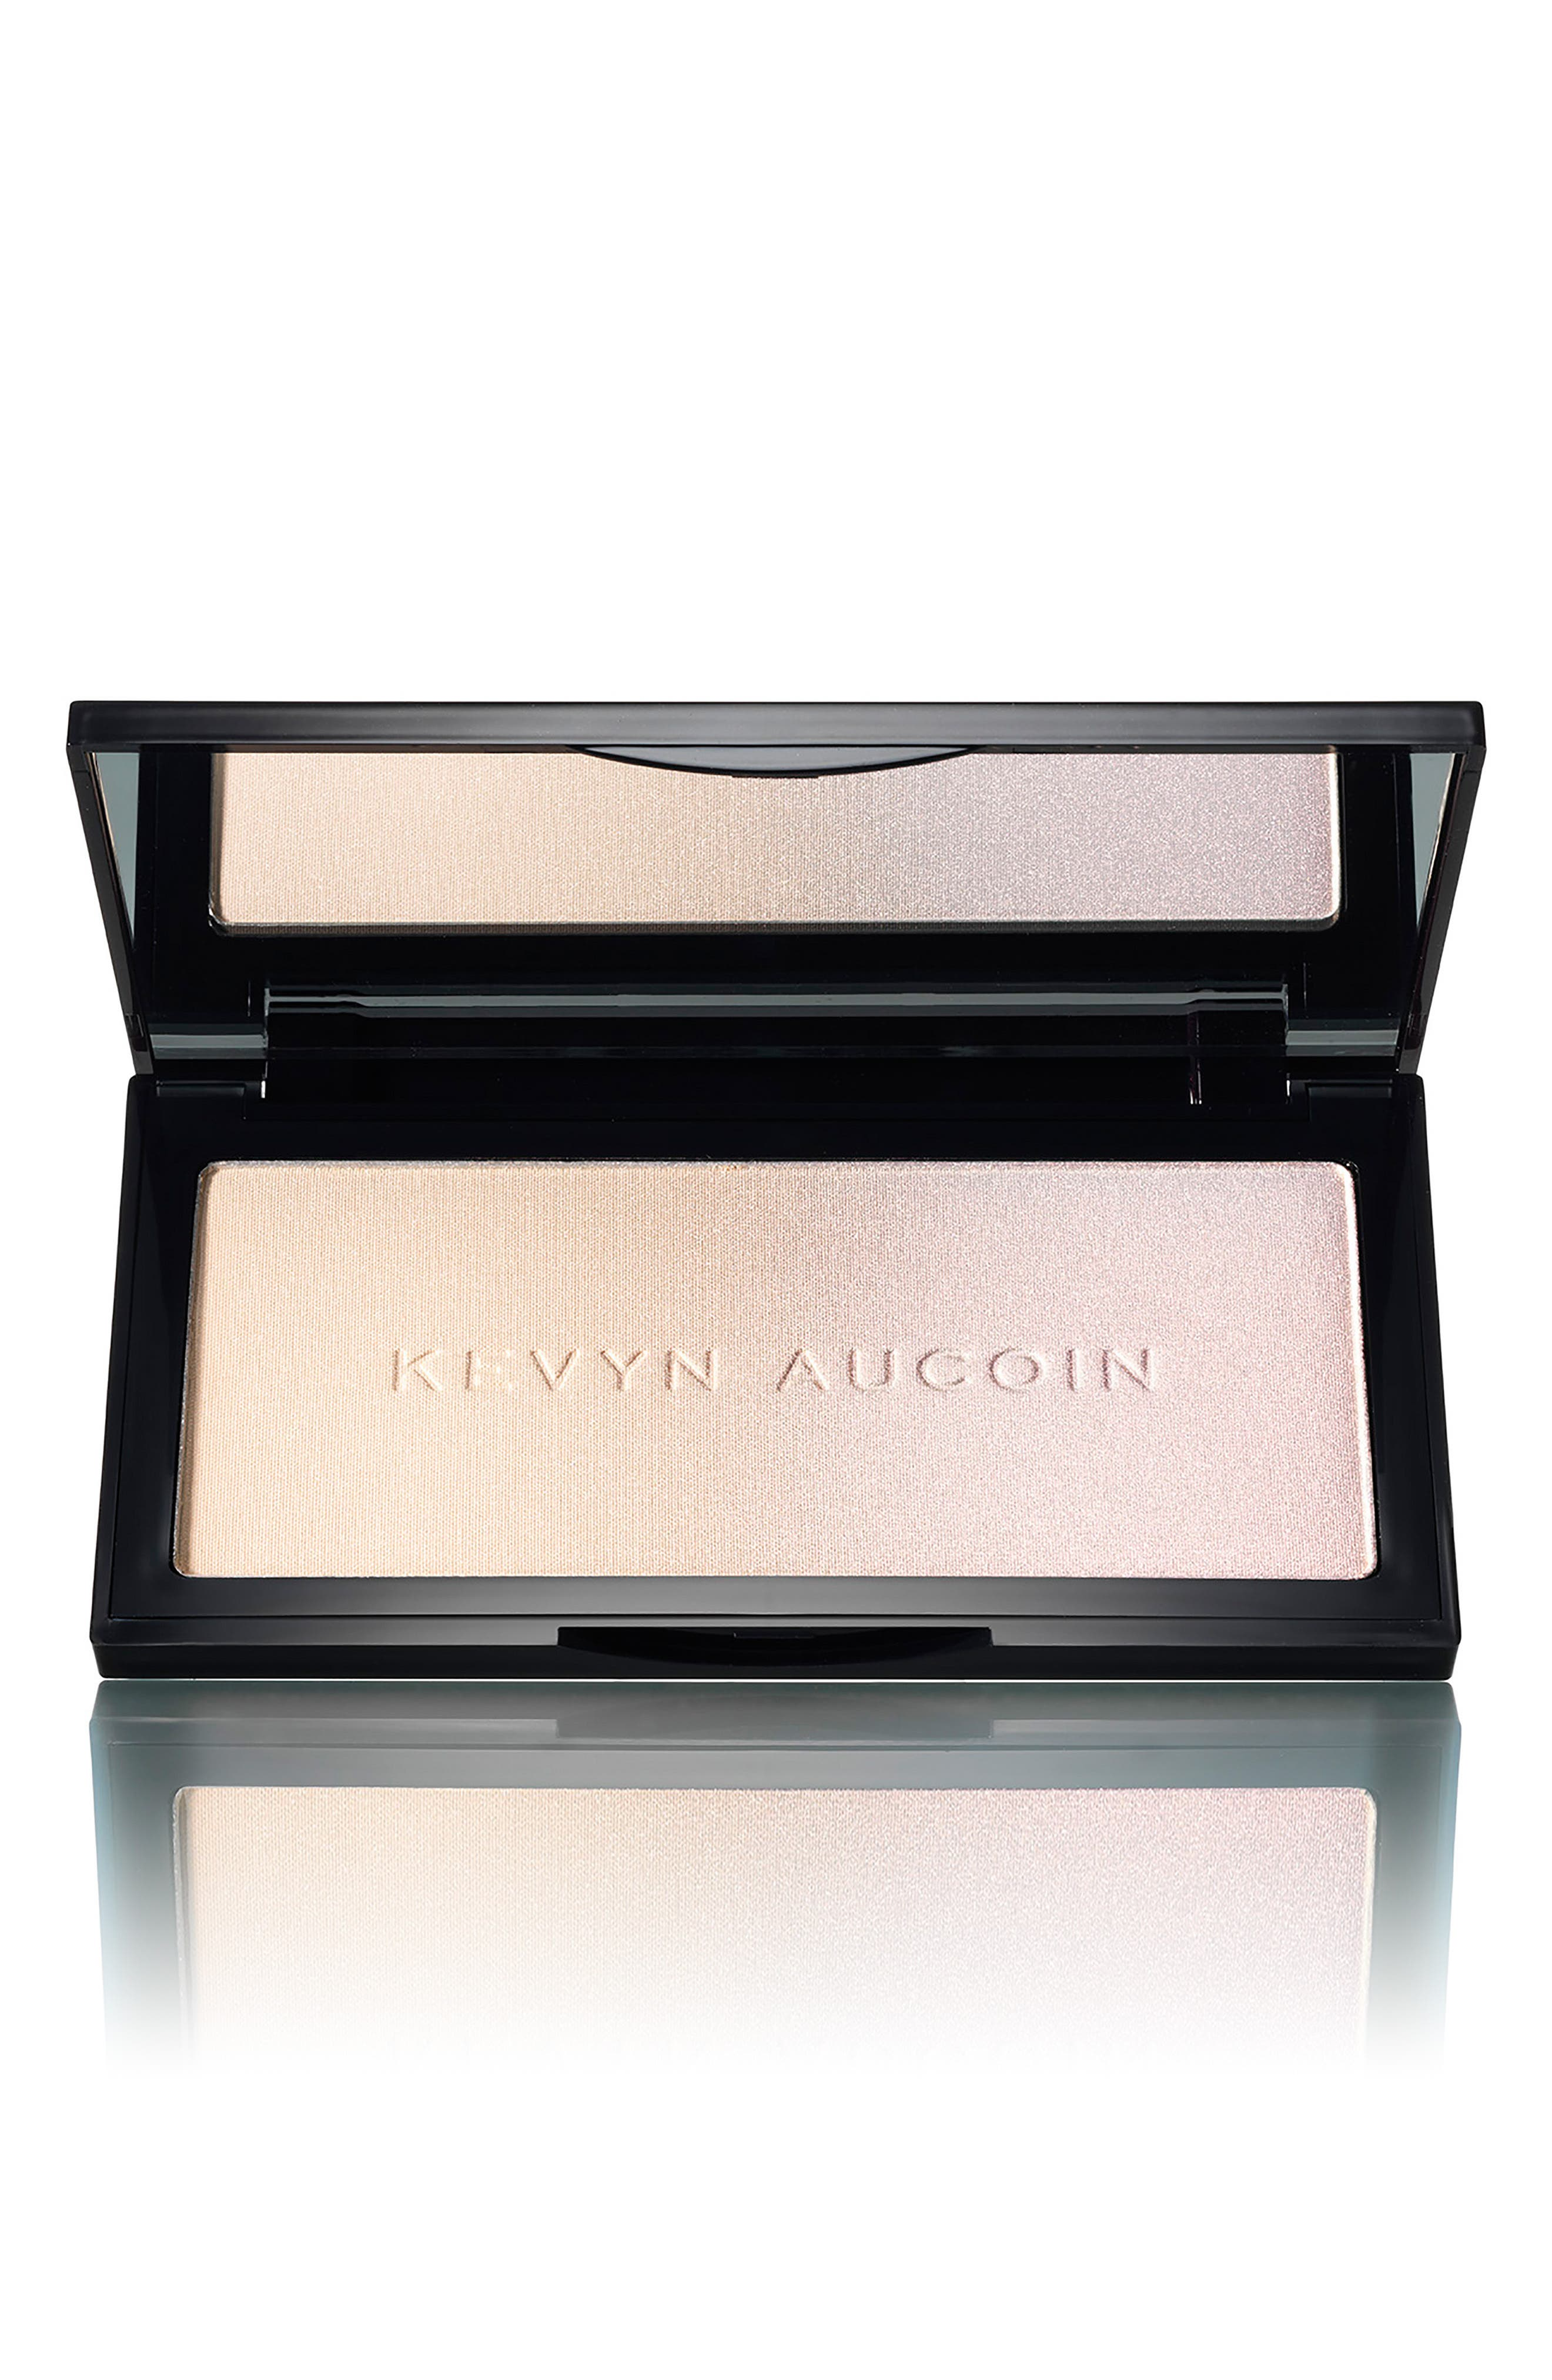 SPACE.NK.apothecary Kevyn Aucoin Beauty The Neo-Setting Powder,                             Main thumbnail 1, color,                             000